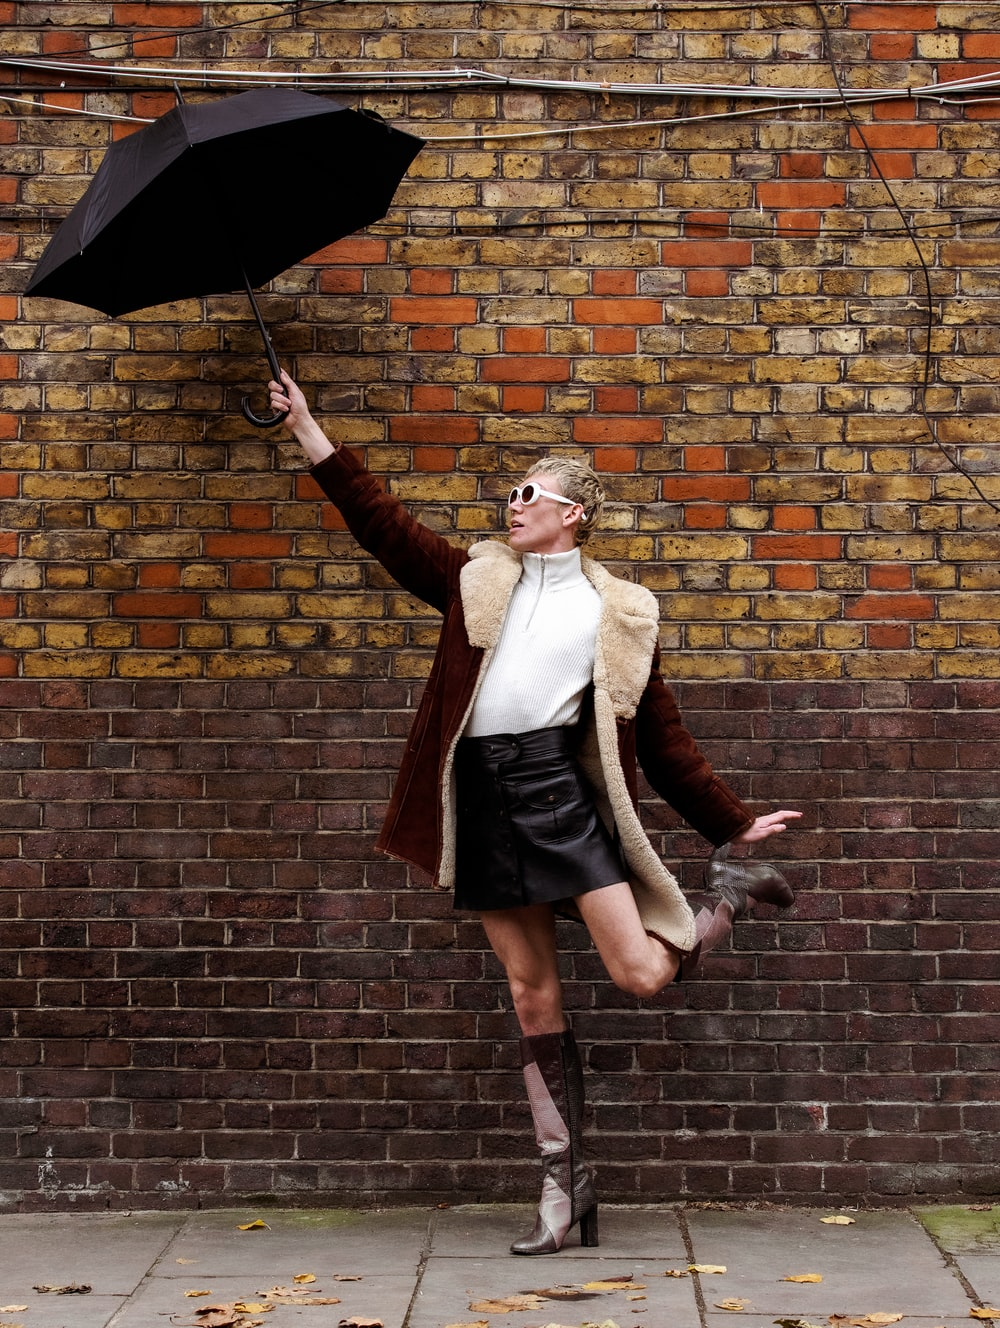 woman in black skirt holding umbrella standing beside brick wall